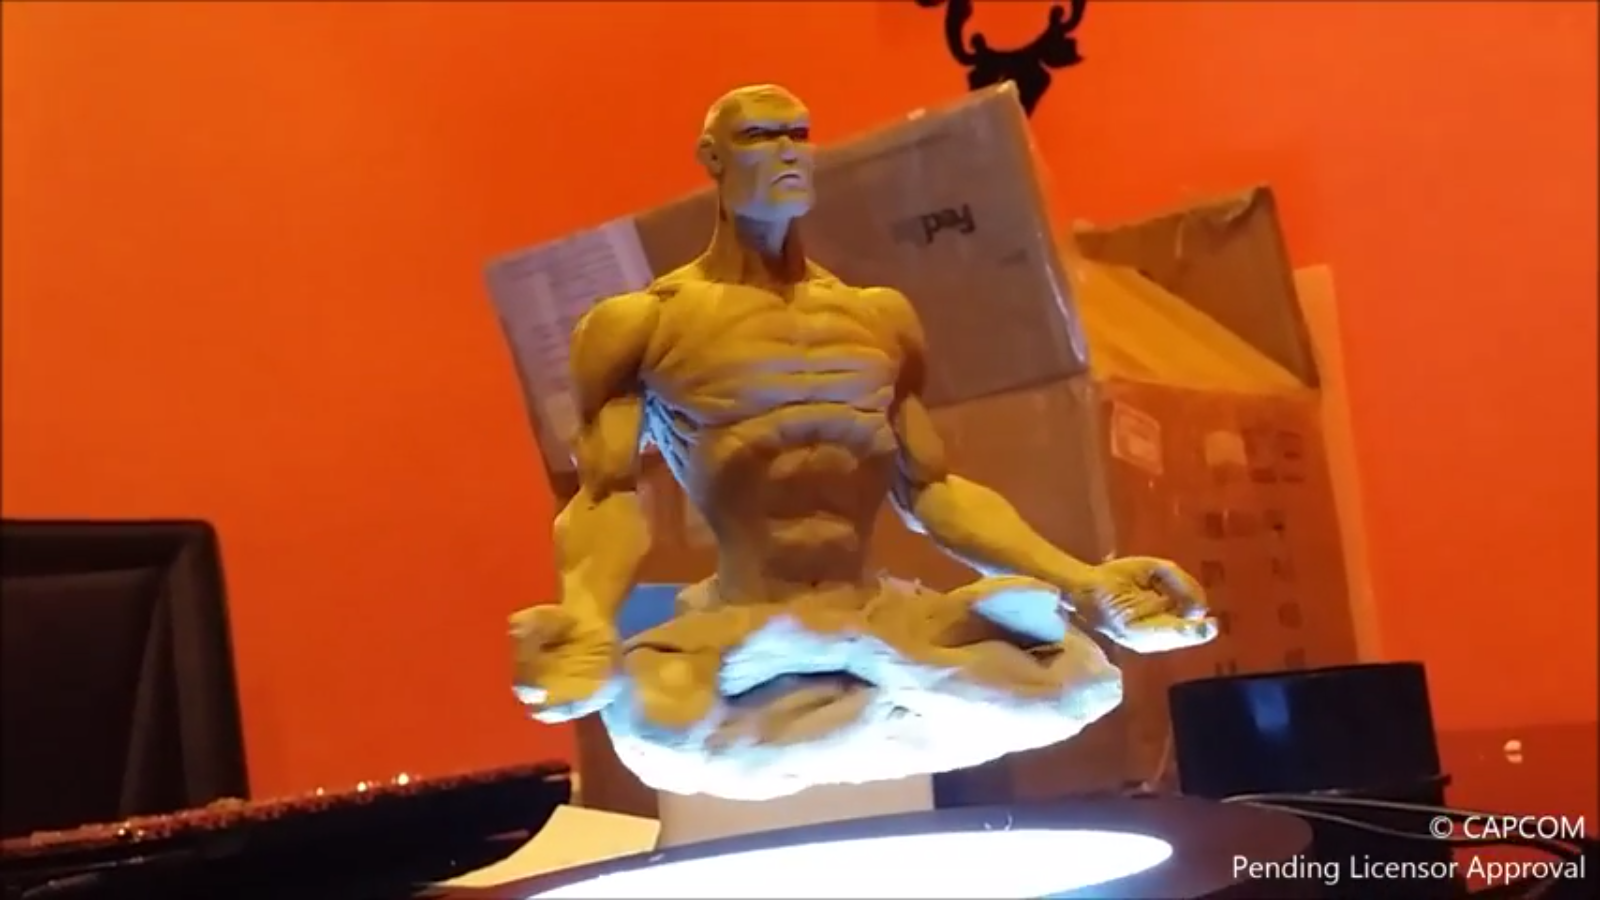 Dhalsim Yoga levitation by Kinetiquettes